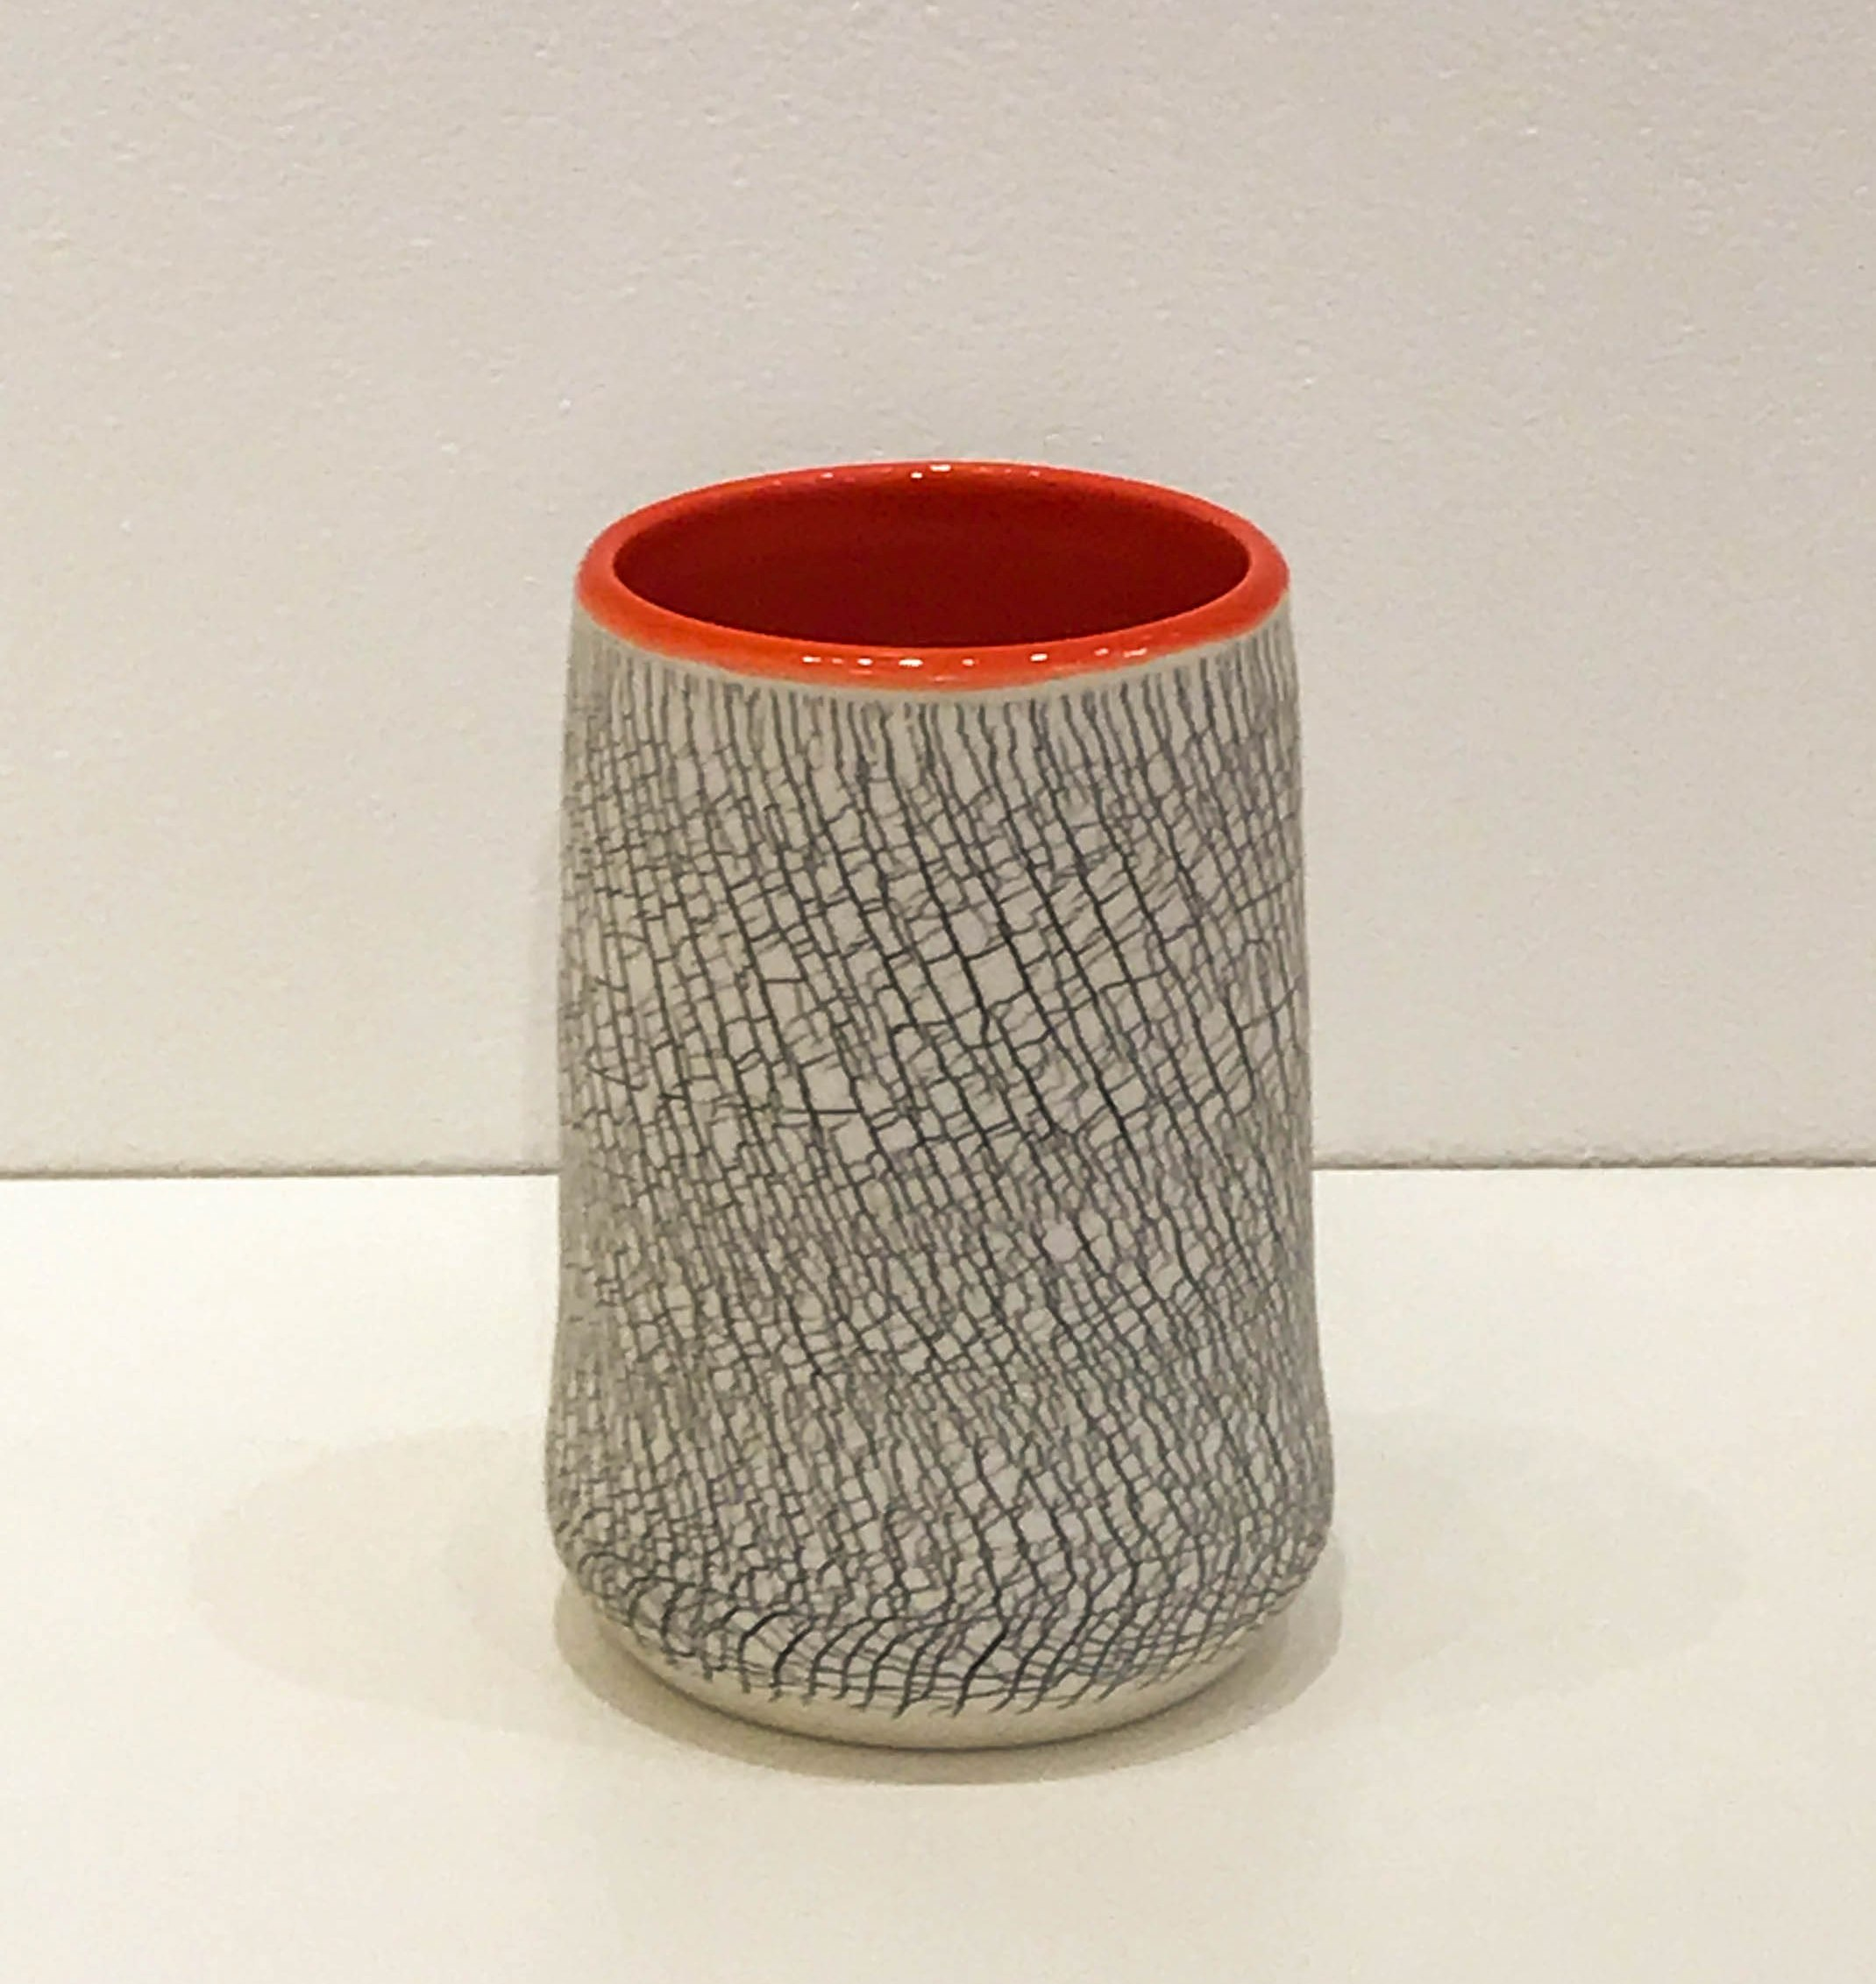 "Wheel-thrown and hand-altered tumbler with black crackle and orange glazed interior, 4 1/2"" x 2 3/4"" x 2 3/4"",sold"